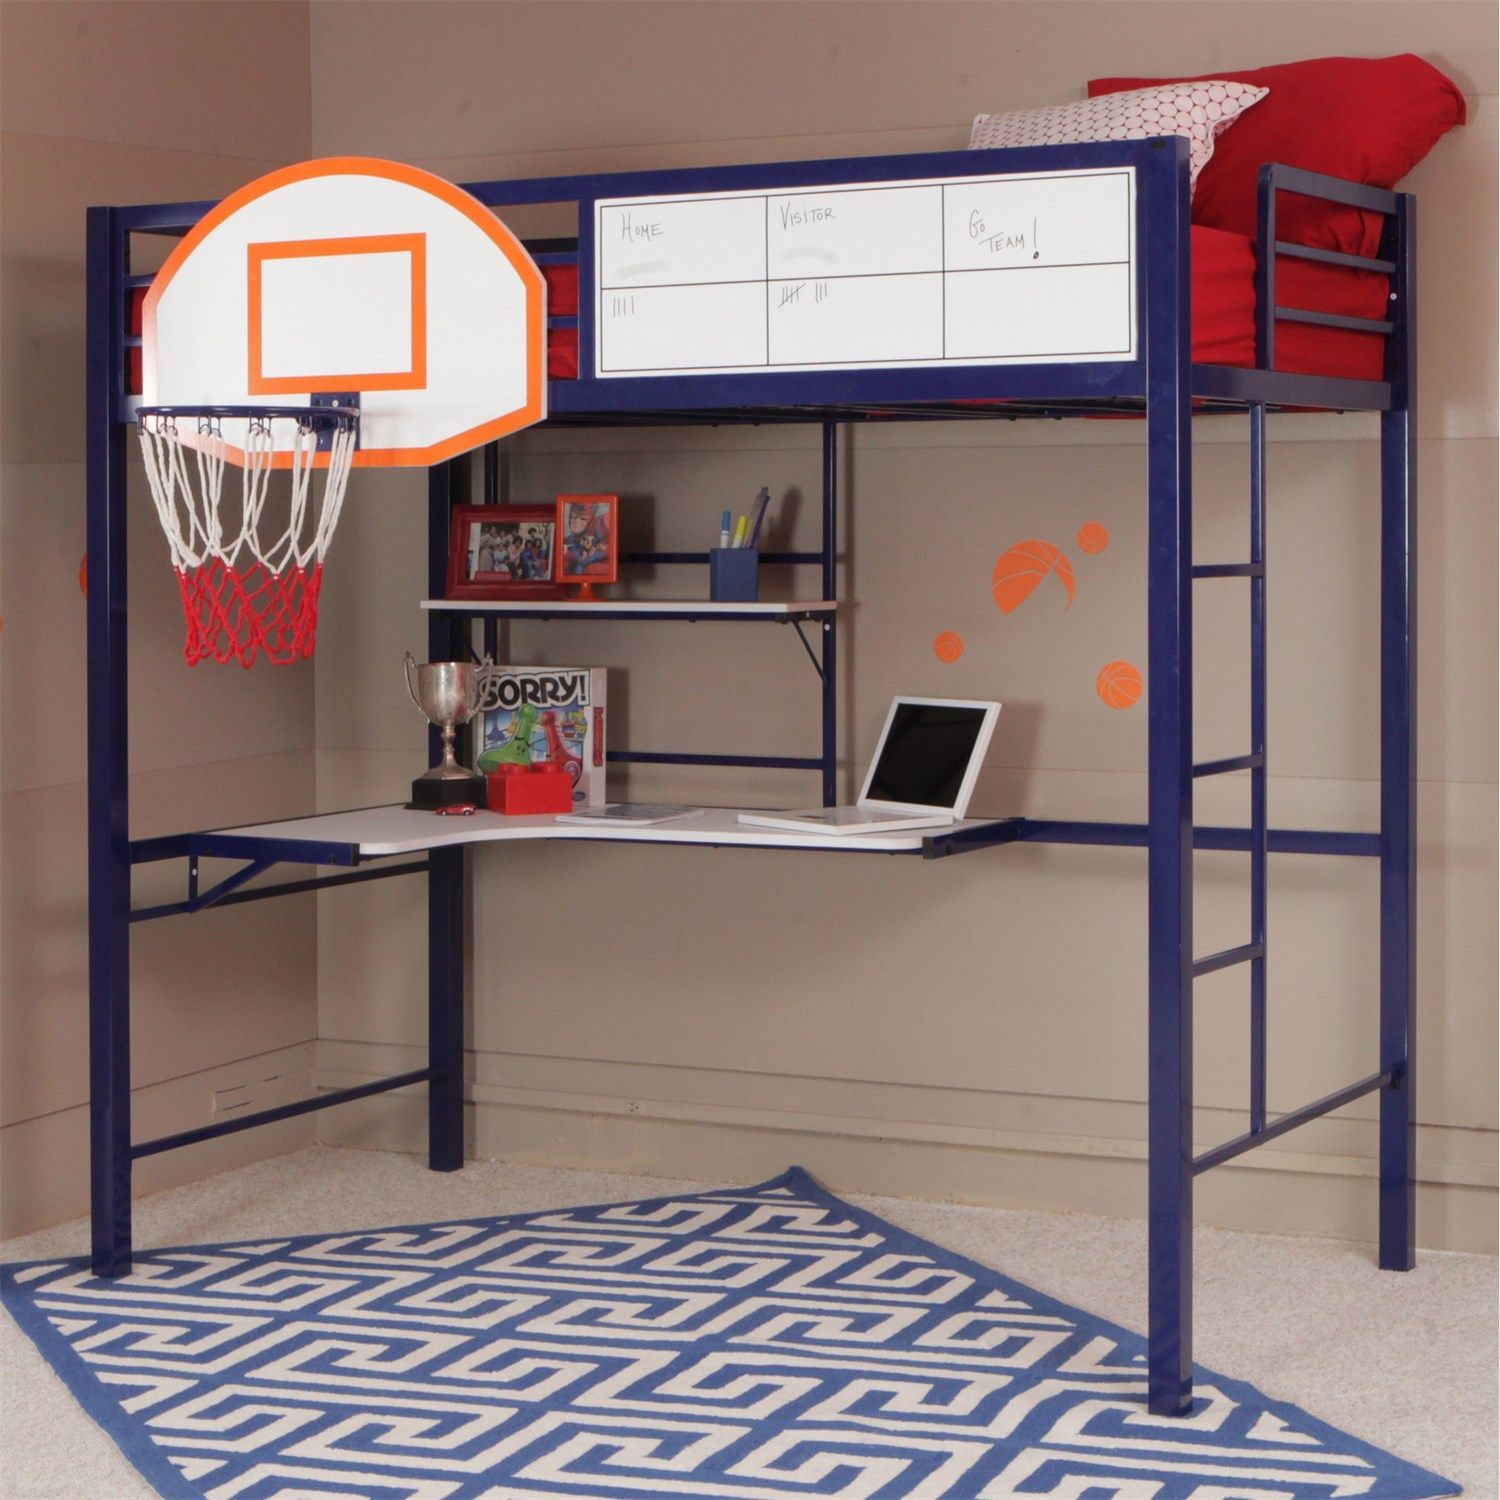 Powell Furniture 14Y2002BB Hoops Basketball Bunk Bed | Powell ...